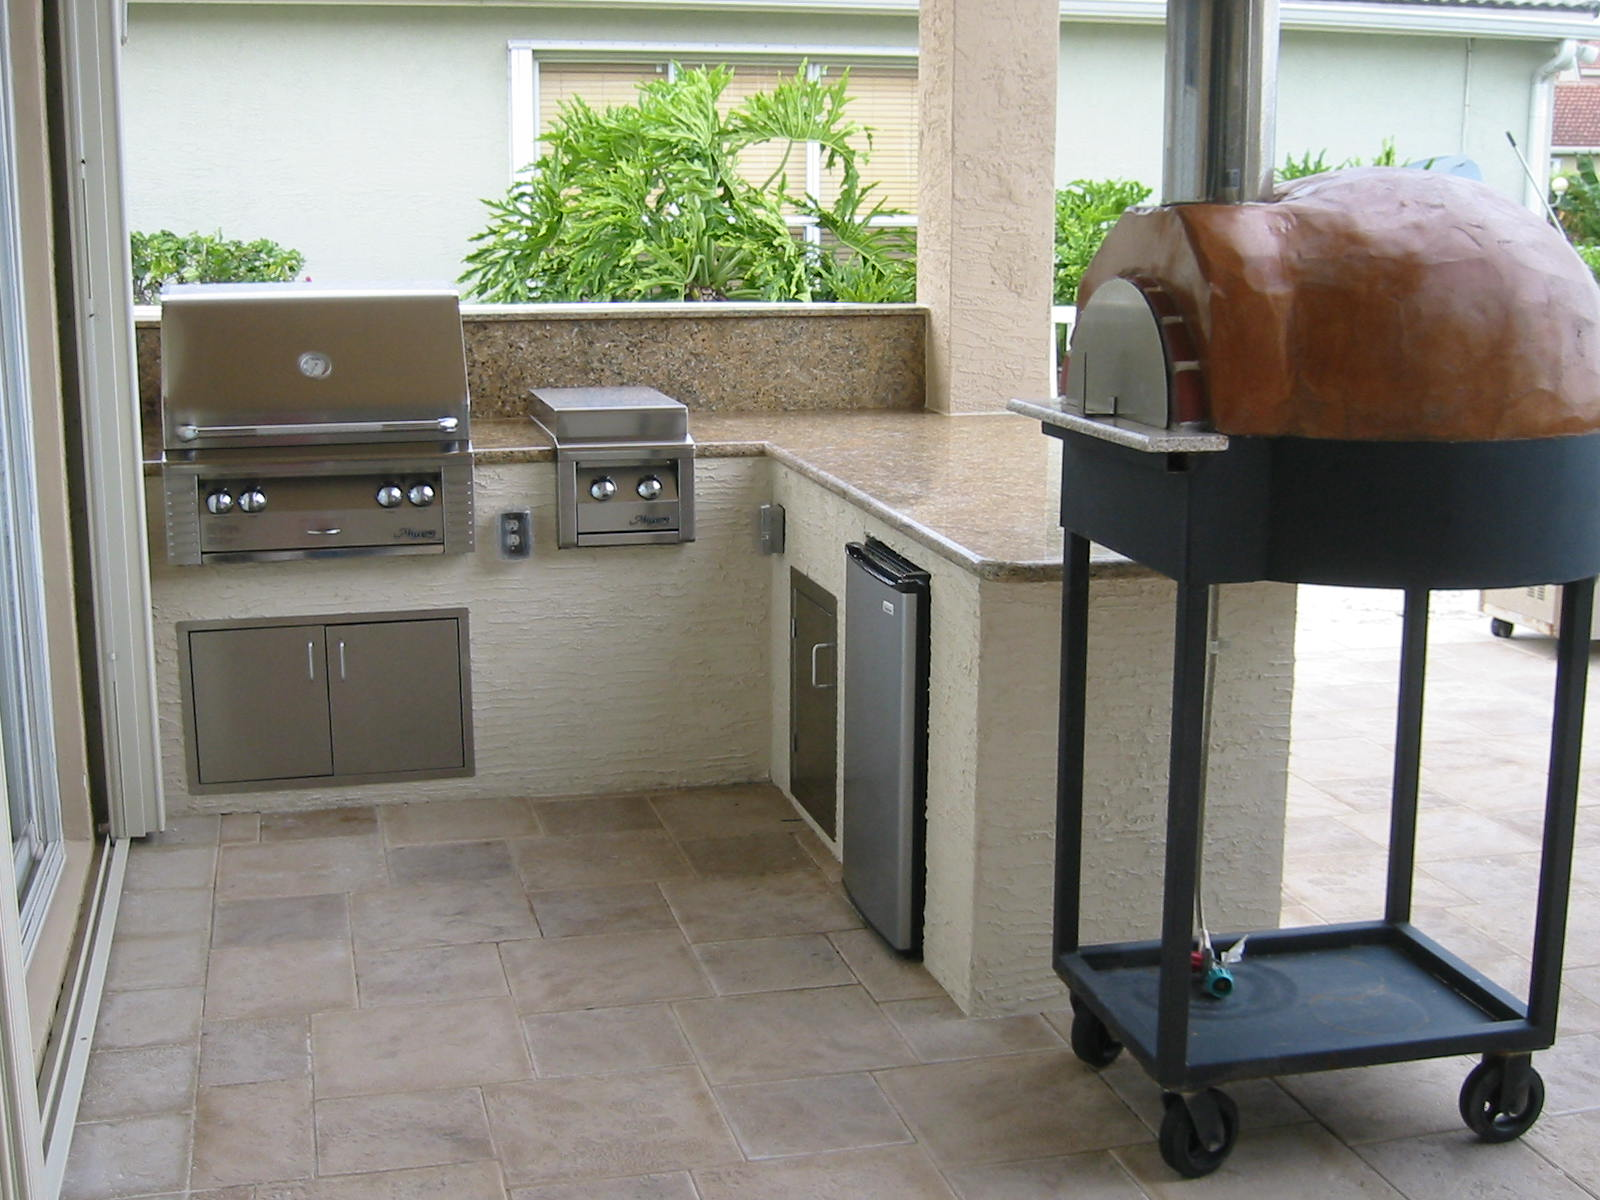 Alfresco Outdoor Kitchens Custom Outdoor Kitchen With Alfresco Built In Bbq Grill And Stone